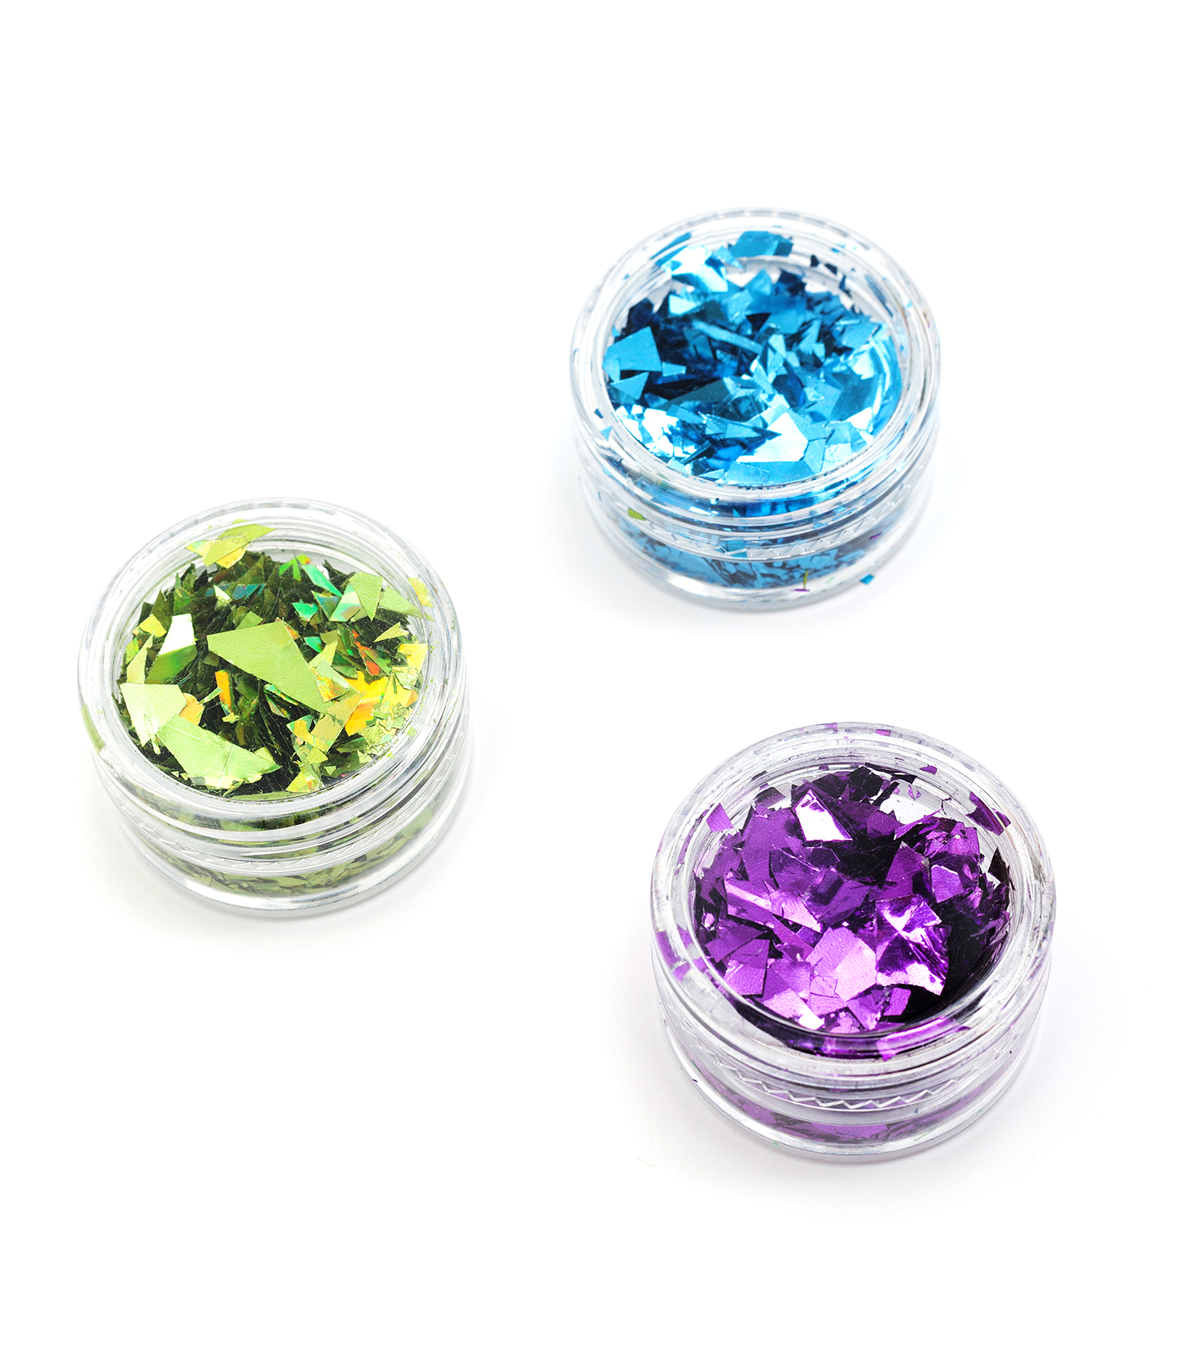 American Crafts Color Pour Embellish Foil Flakes-Warm Cool